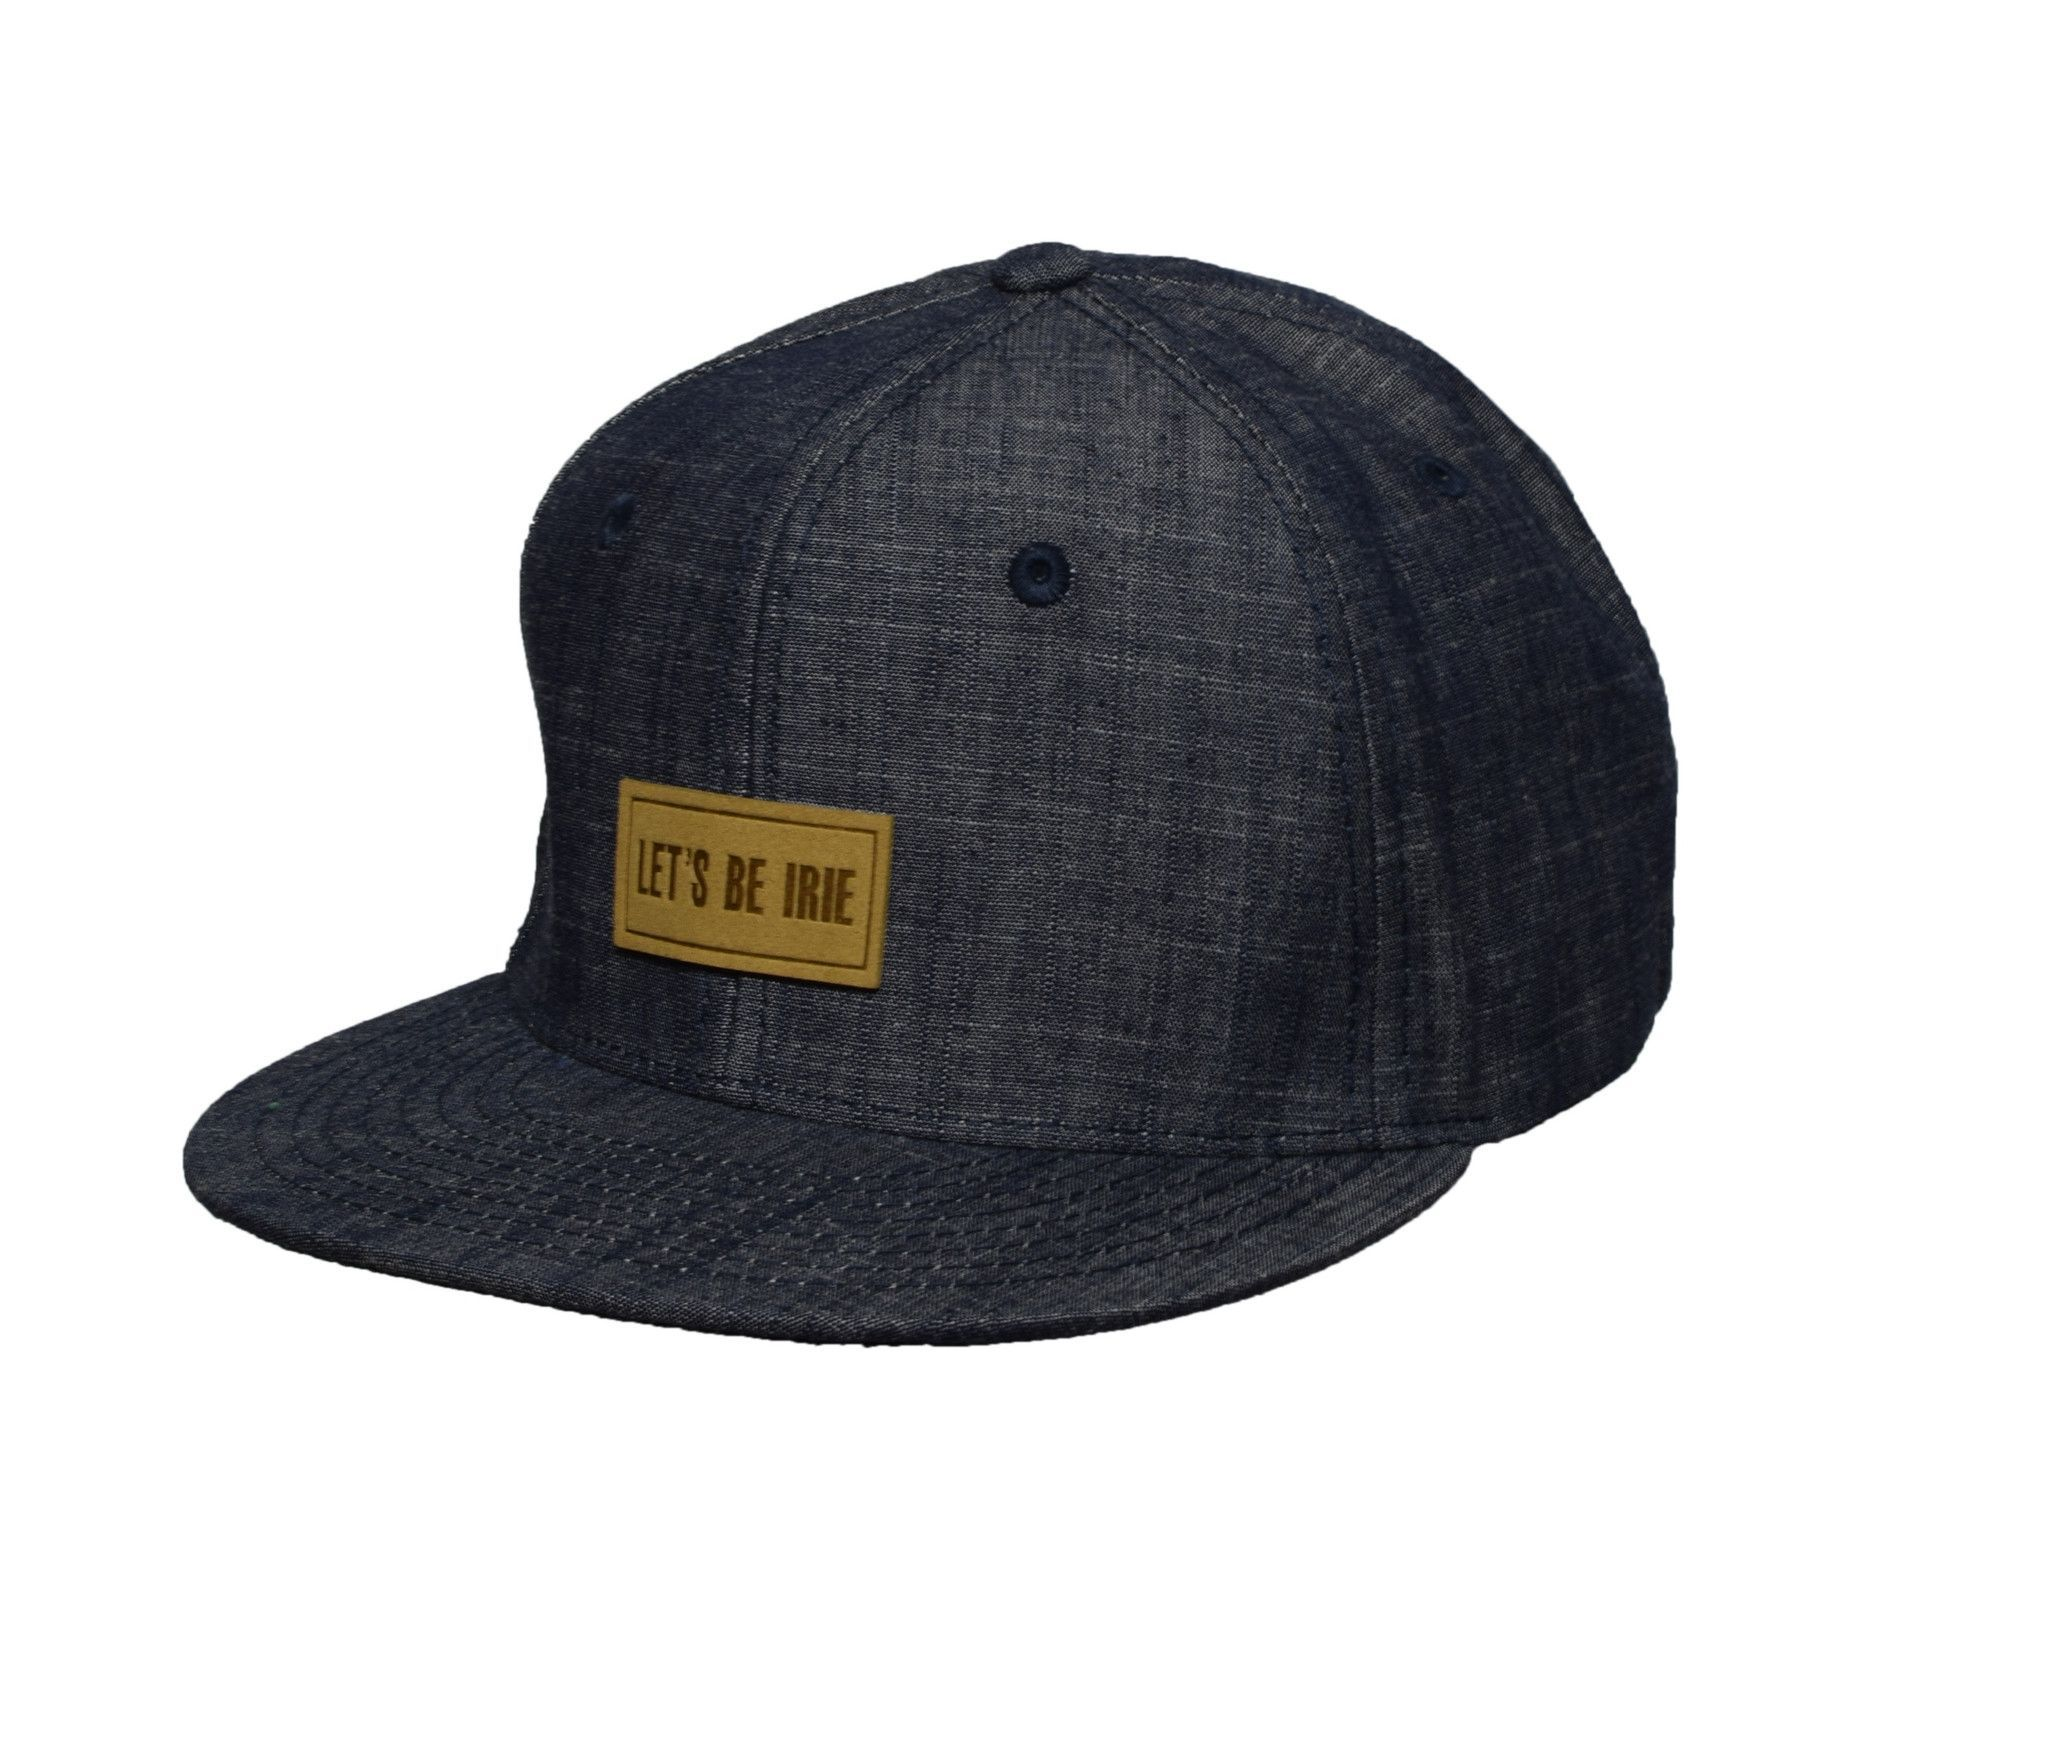 Second Generation Let's Be Irie Snapback - Washed Blue Denim